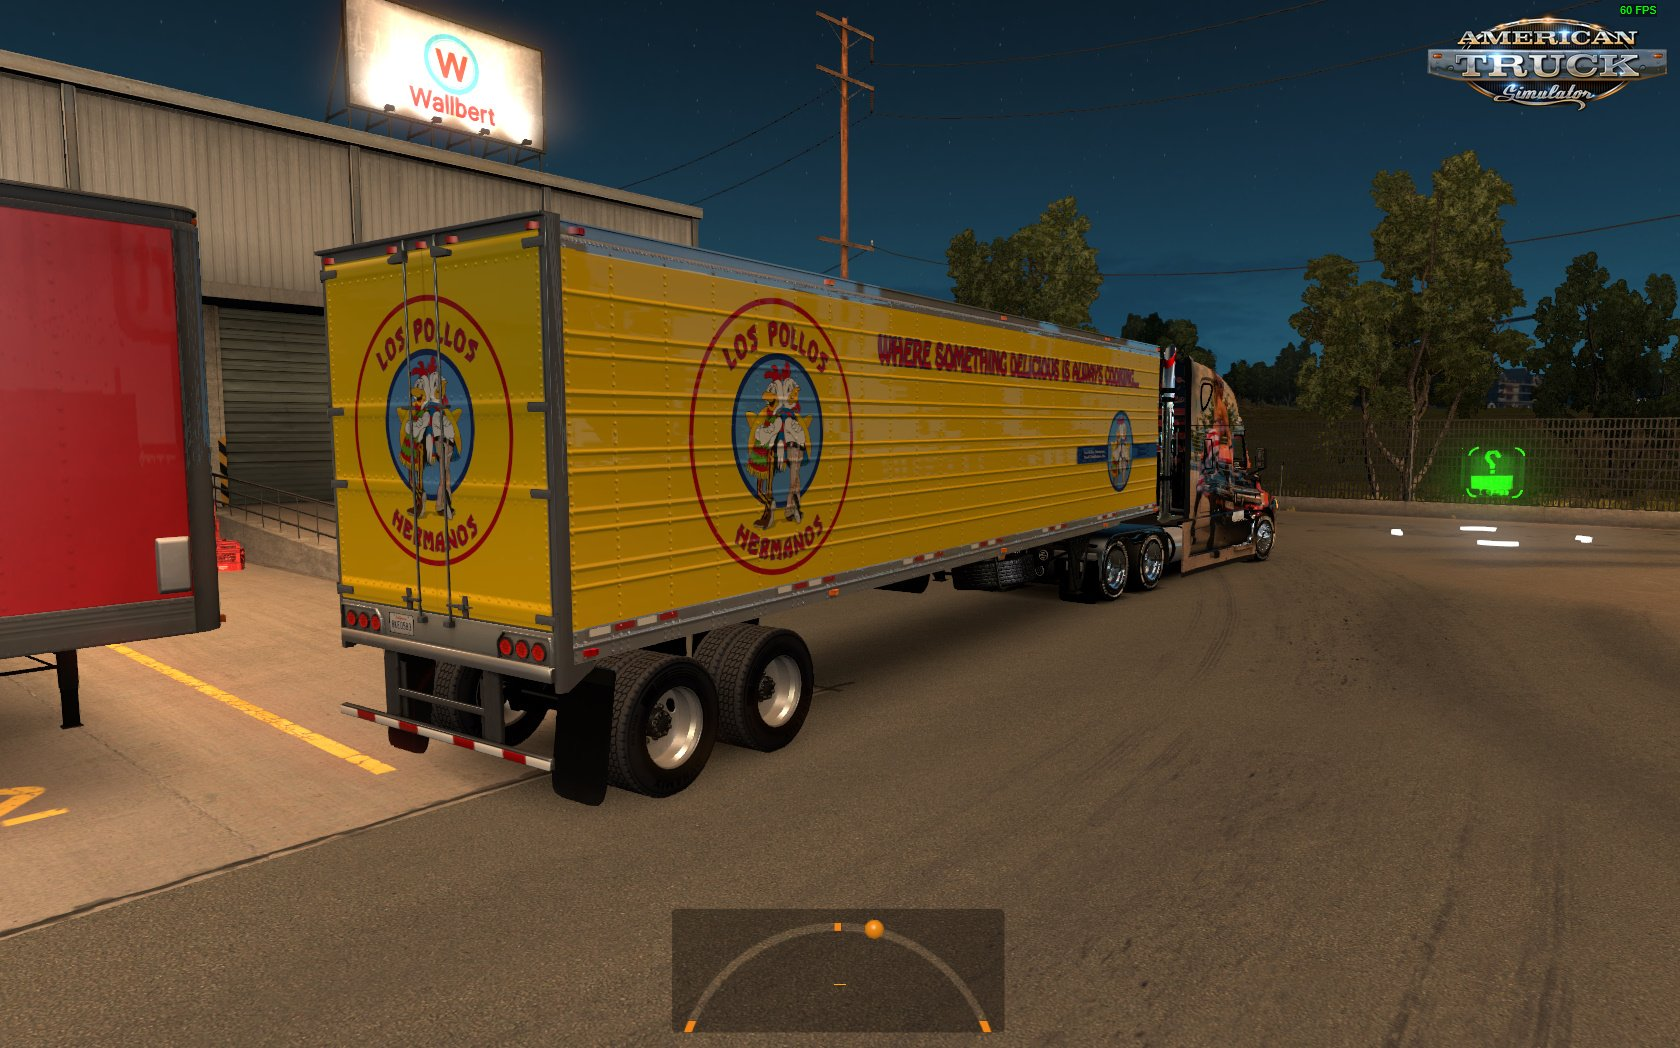 Los Pollos Hermanos 579 Skin and Standalone Trailer (Fixed) (v1.6.x)